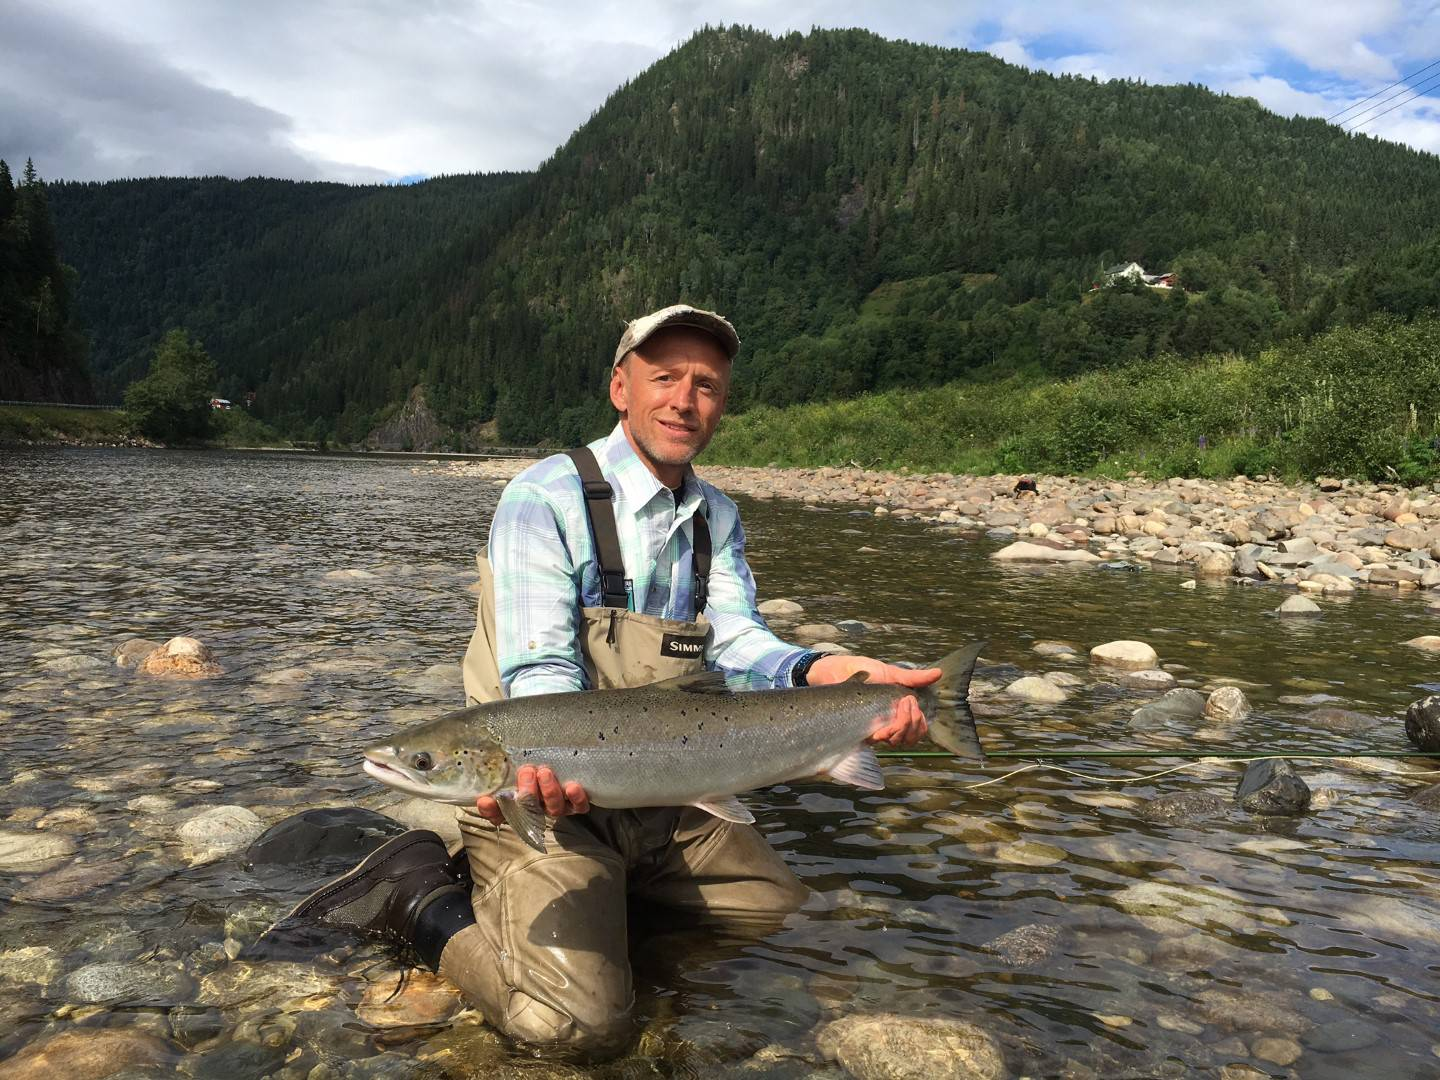 Fred Staerk with his first salmon of the week from BS1.